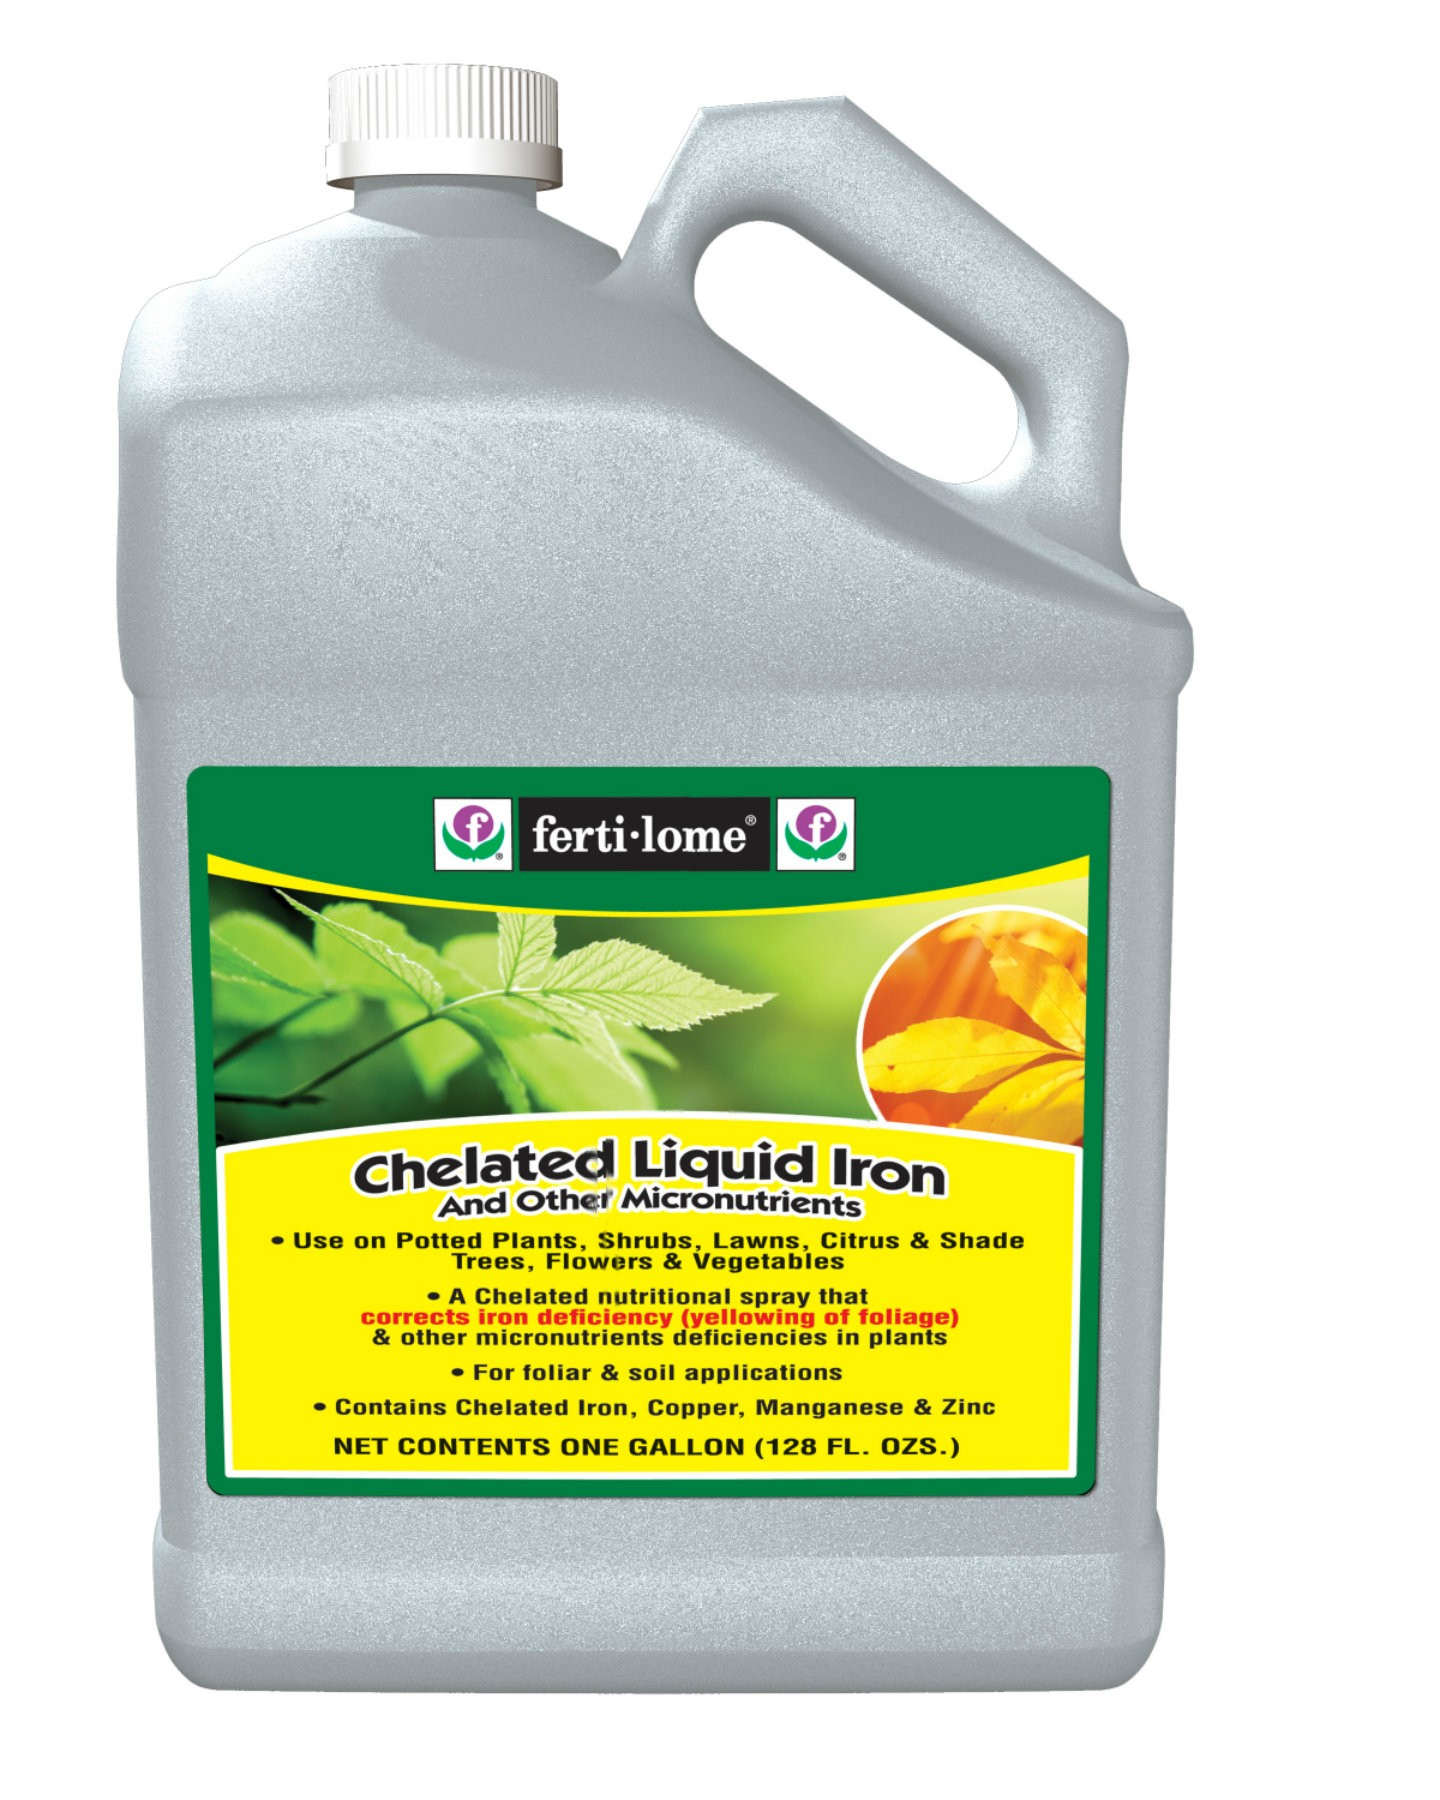 It's just a photo of Eloquent Fertilome Chelated Liquid Iron Label